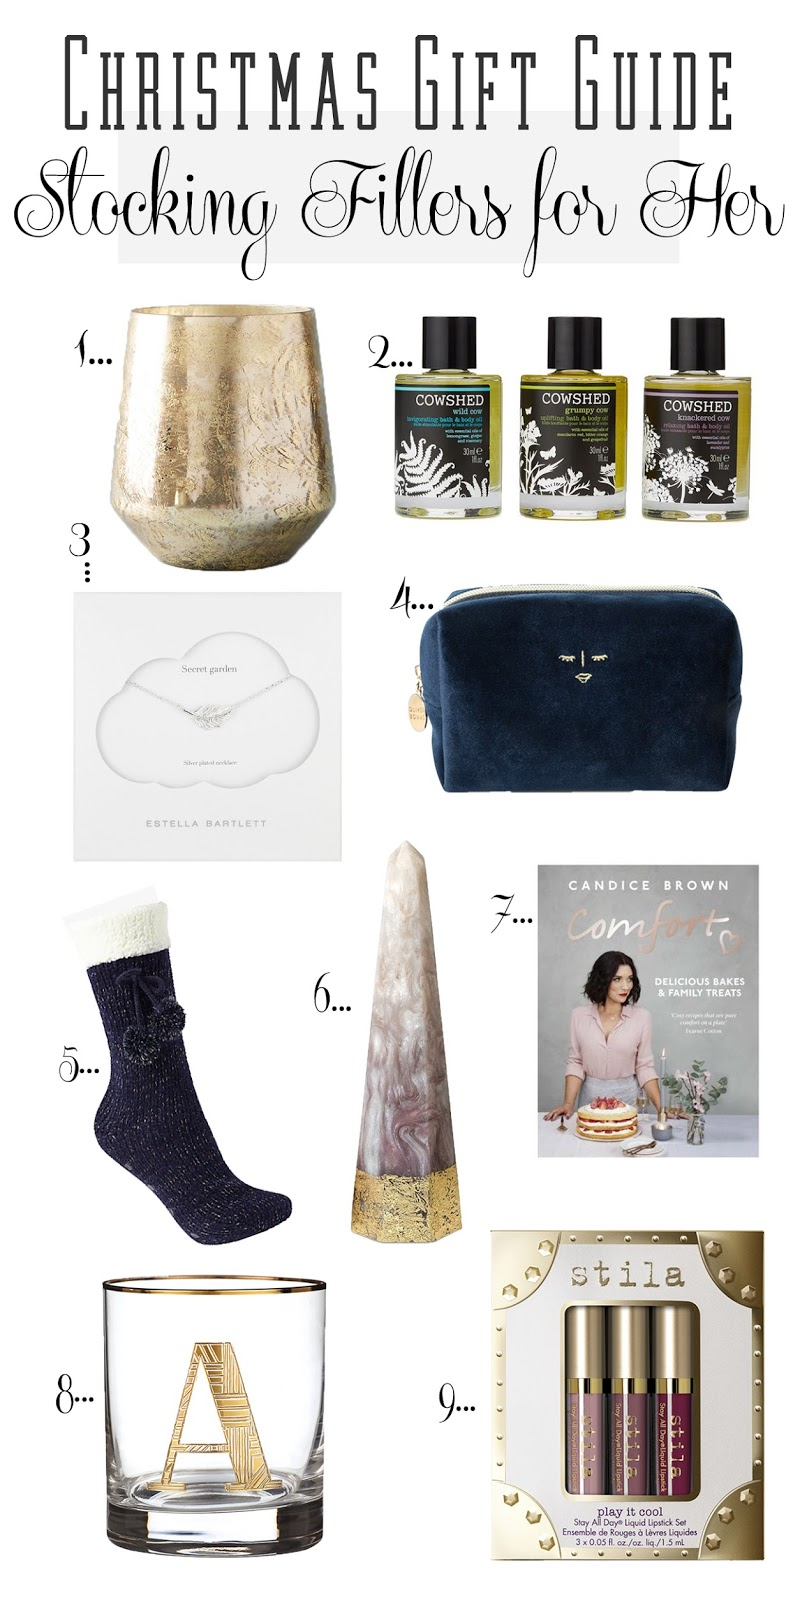 Christmas-Gift-Guide-Stocking-Fillers-for-Her